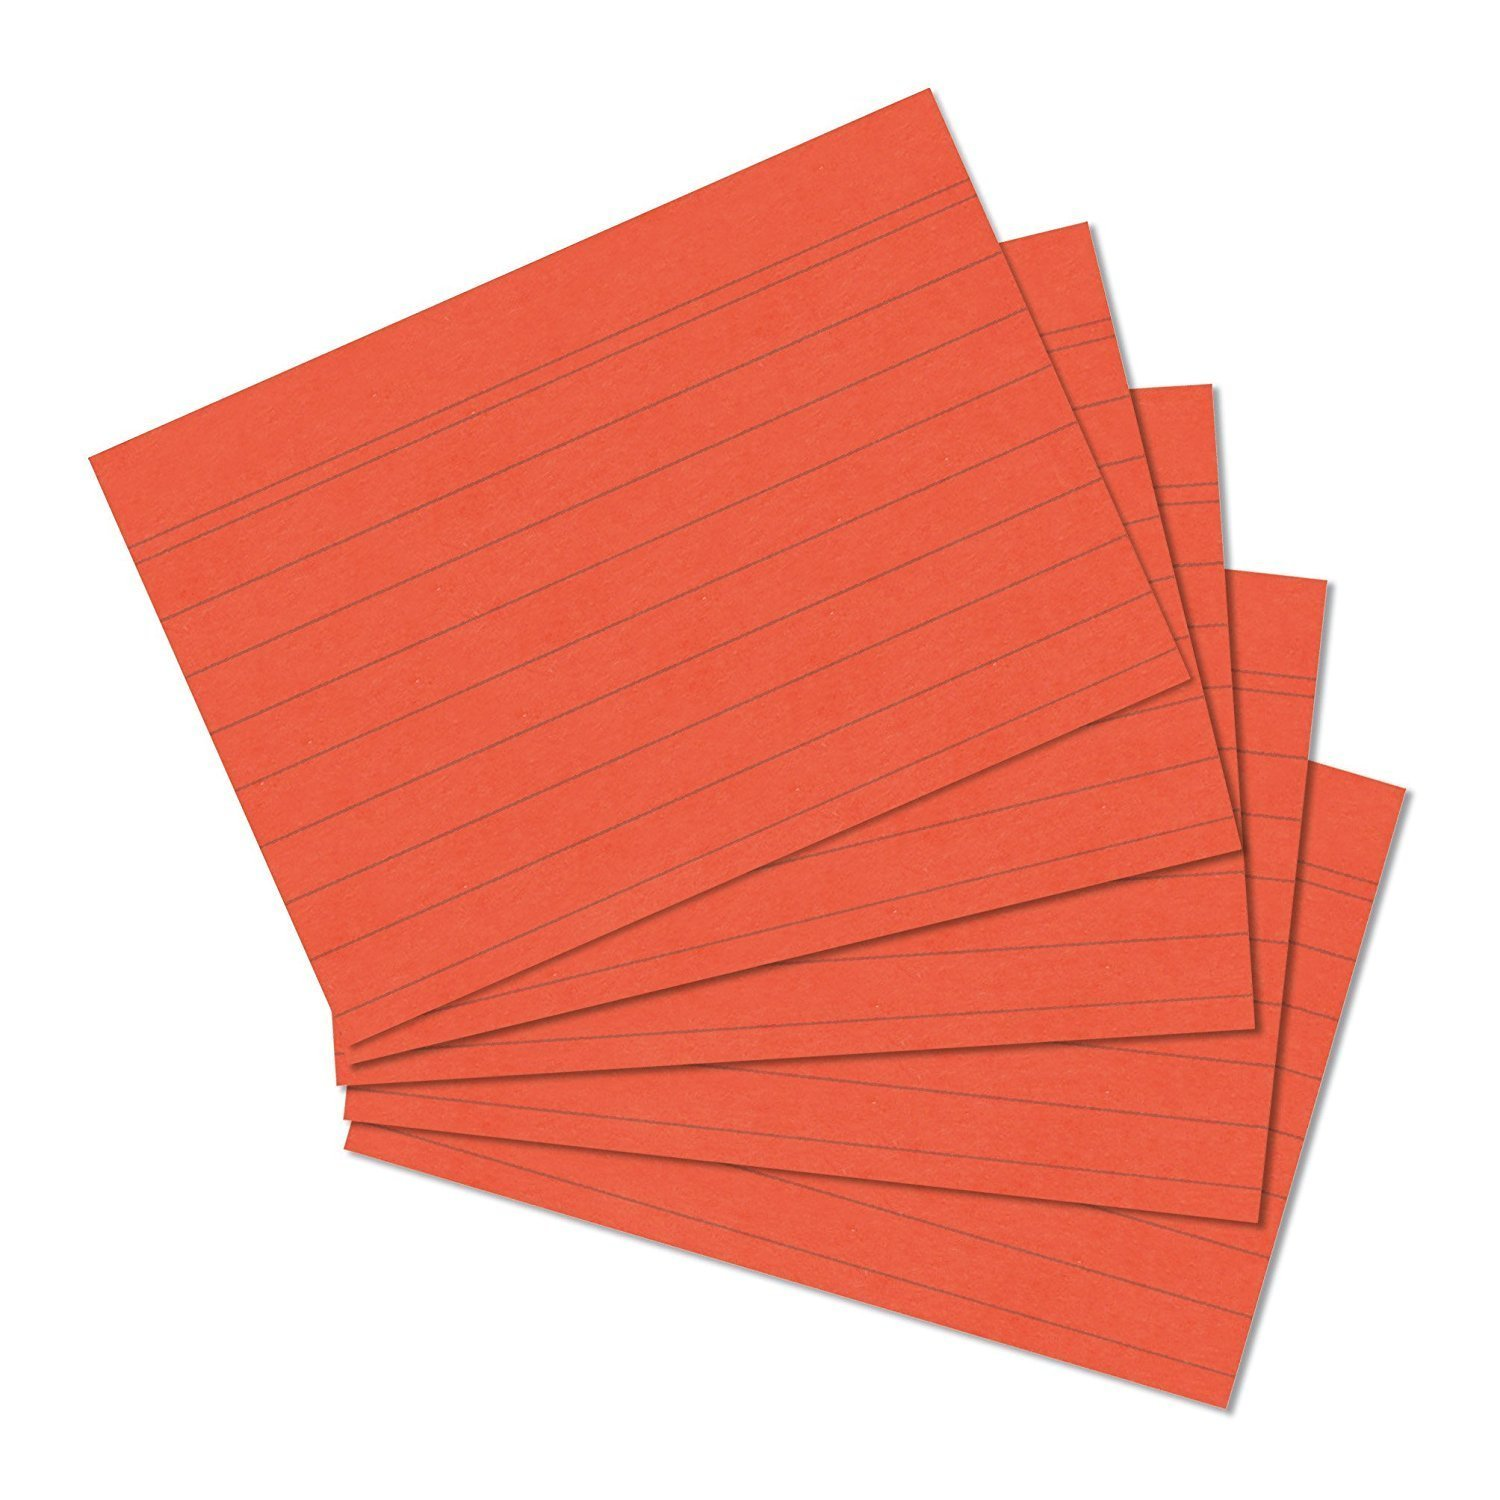 127mm x 76mm Orange Record Cards 5mm Lined Narrow Lines Pack of 100 pieces printed on both sides = 200 pages - by PARTY DECOR